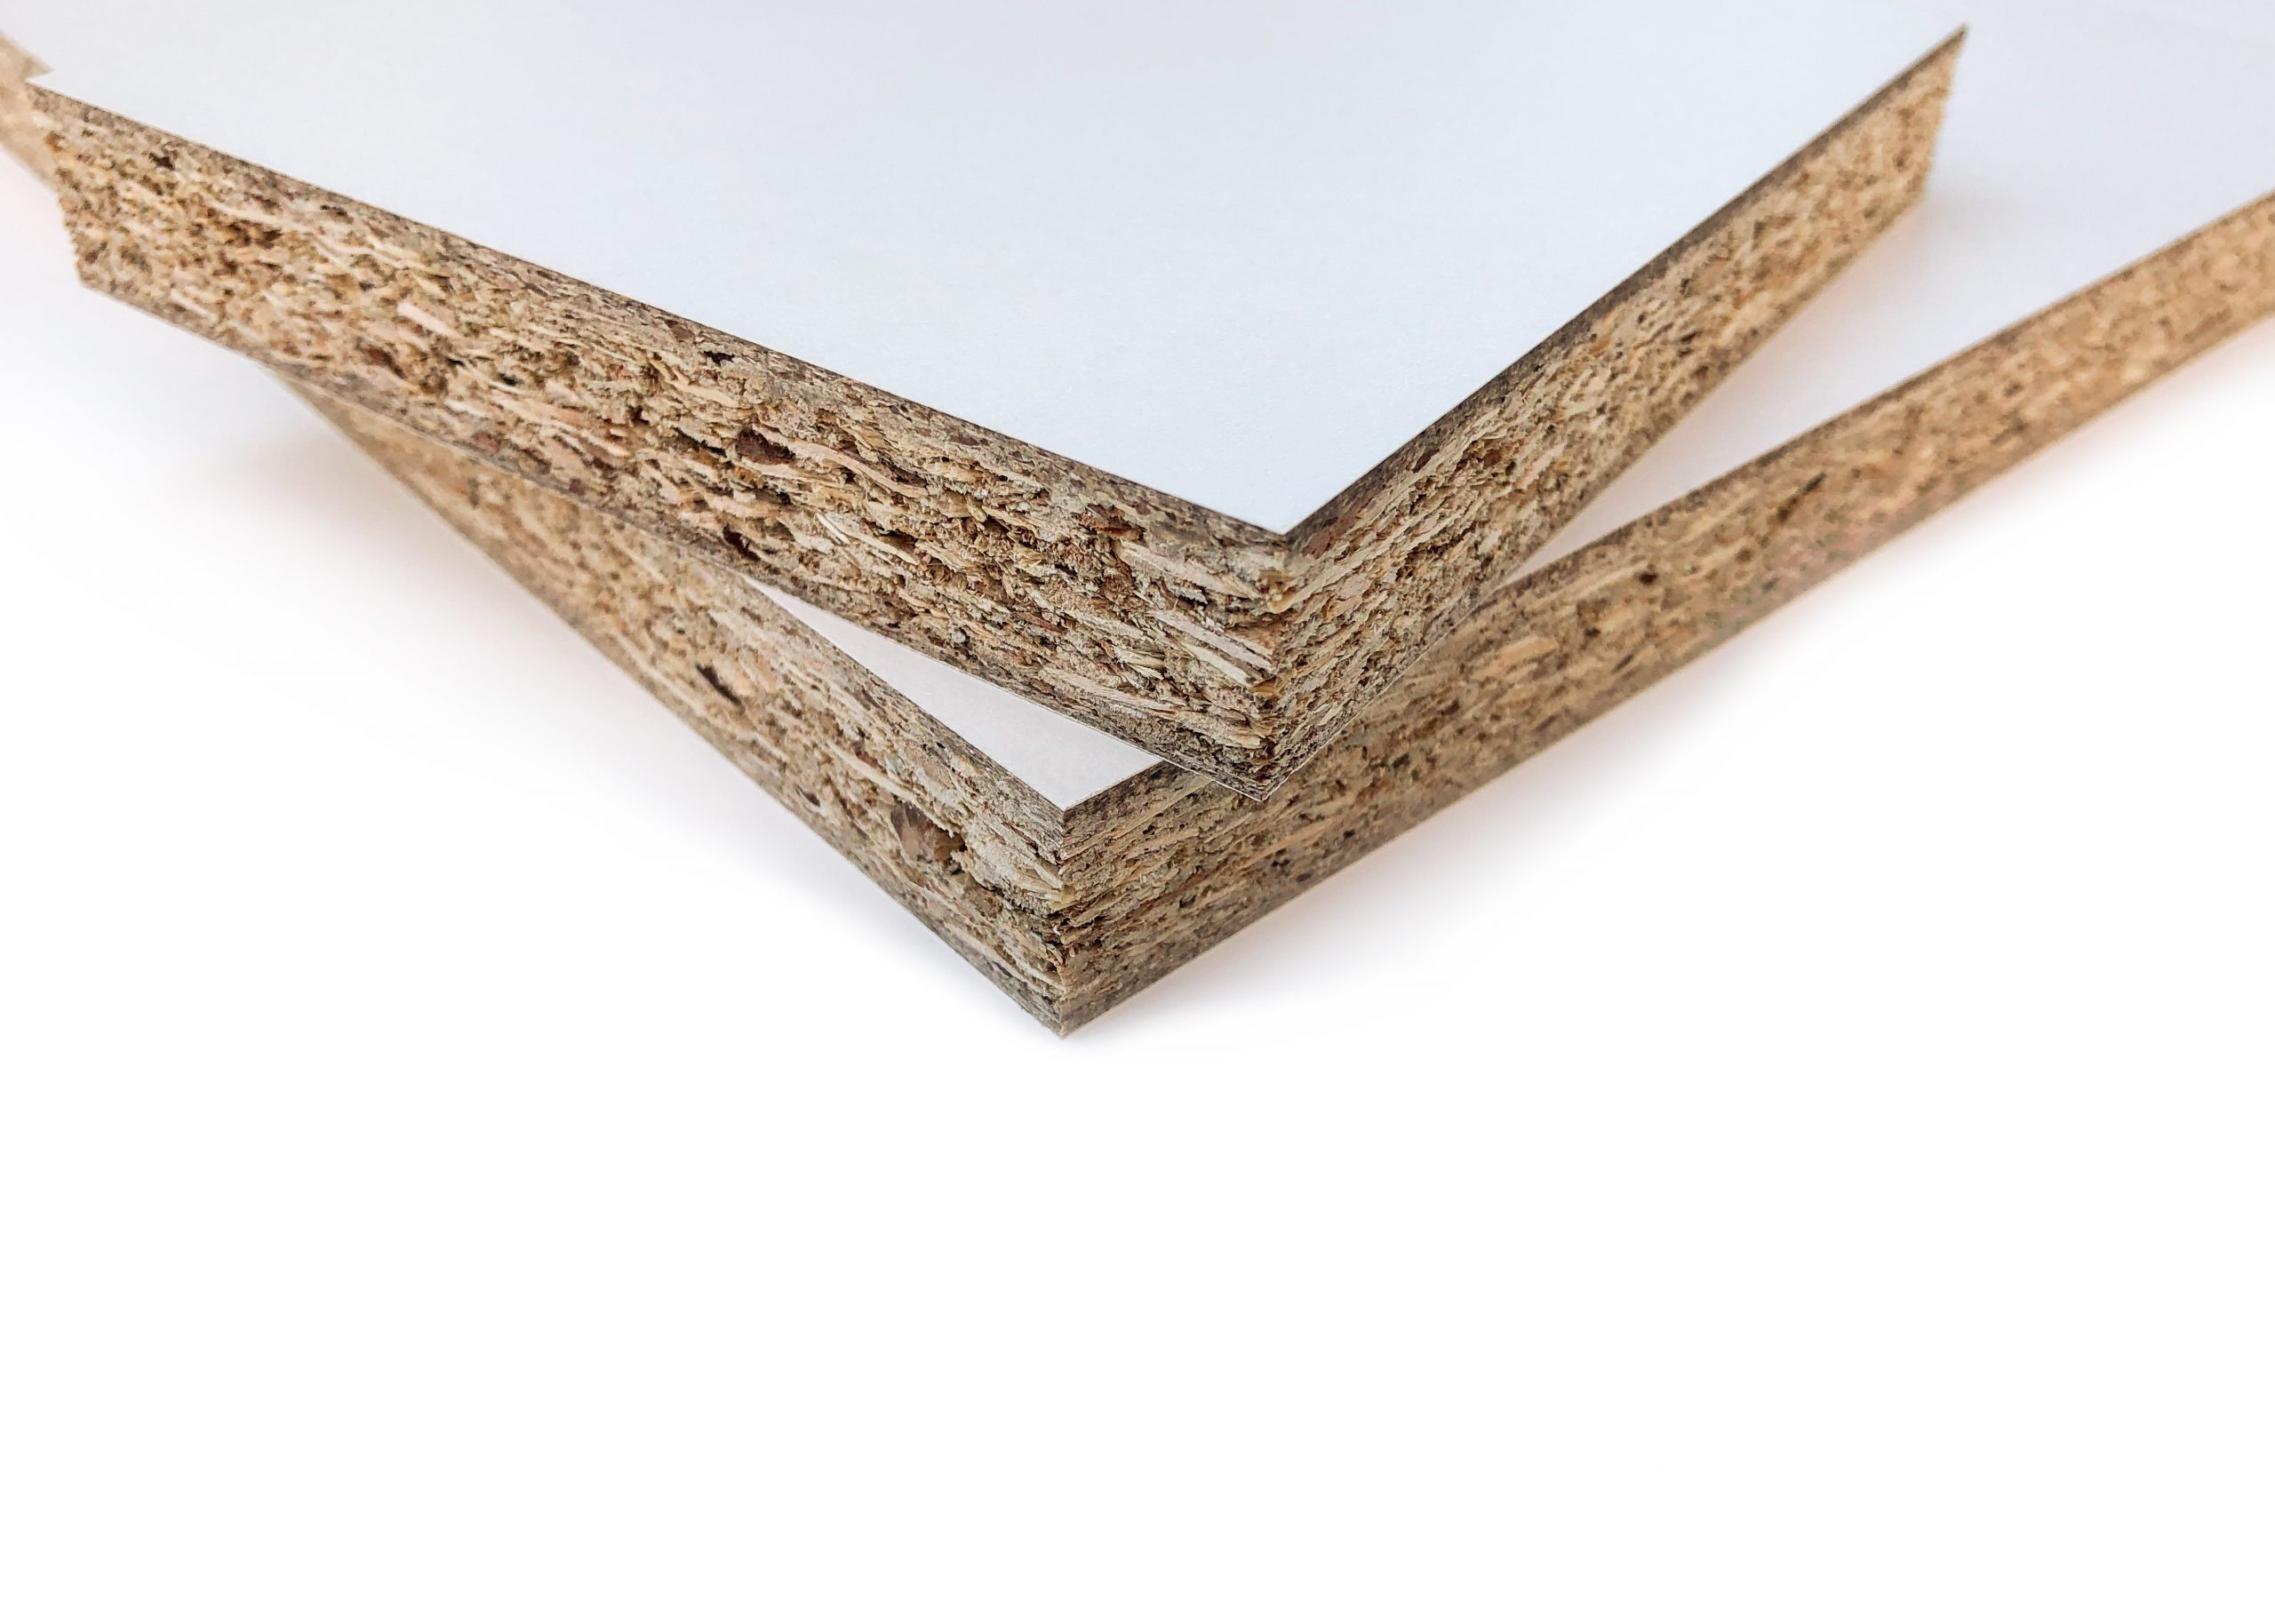 Two squares of MDF wood on top of each other on white background.